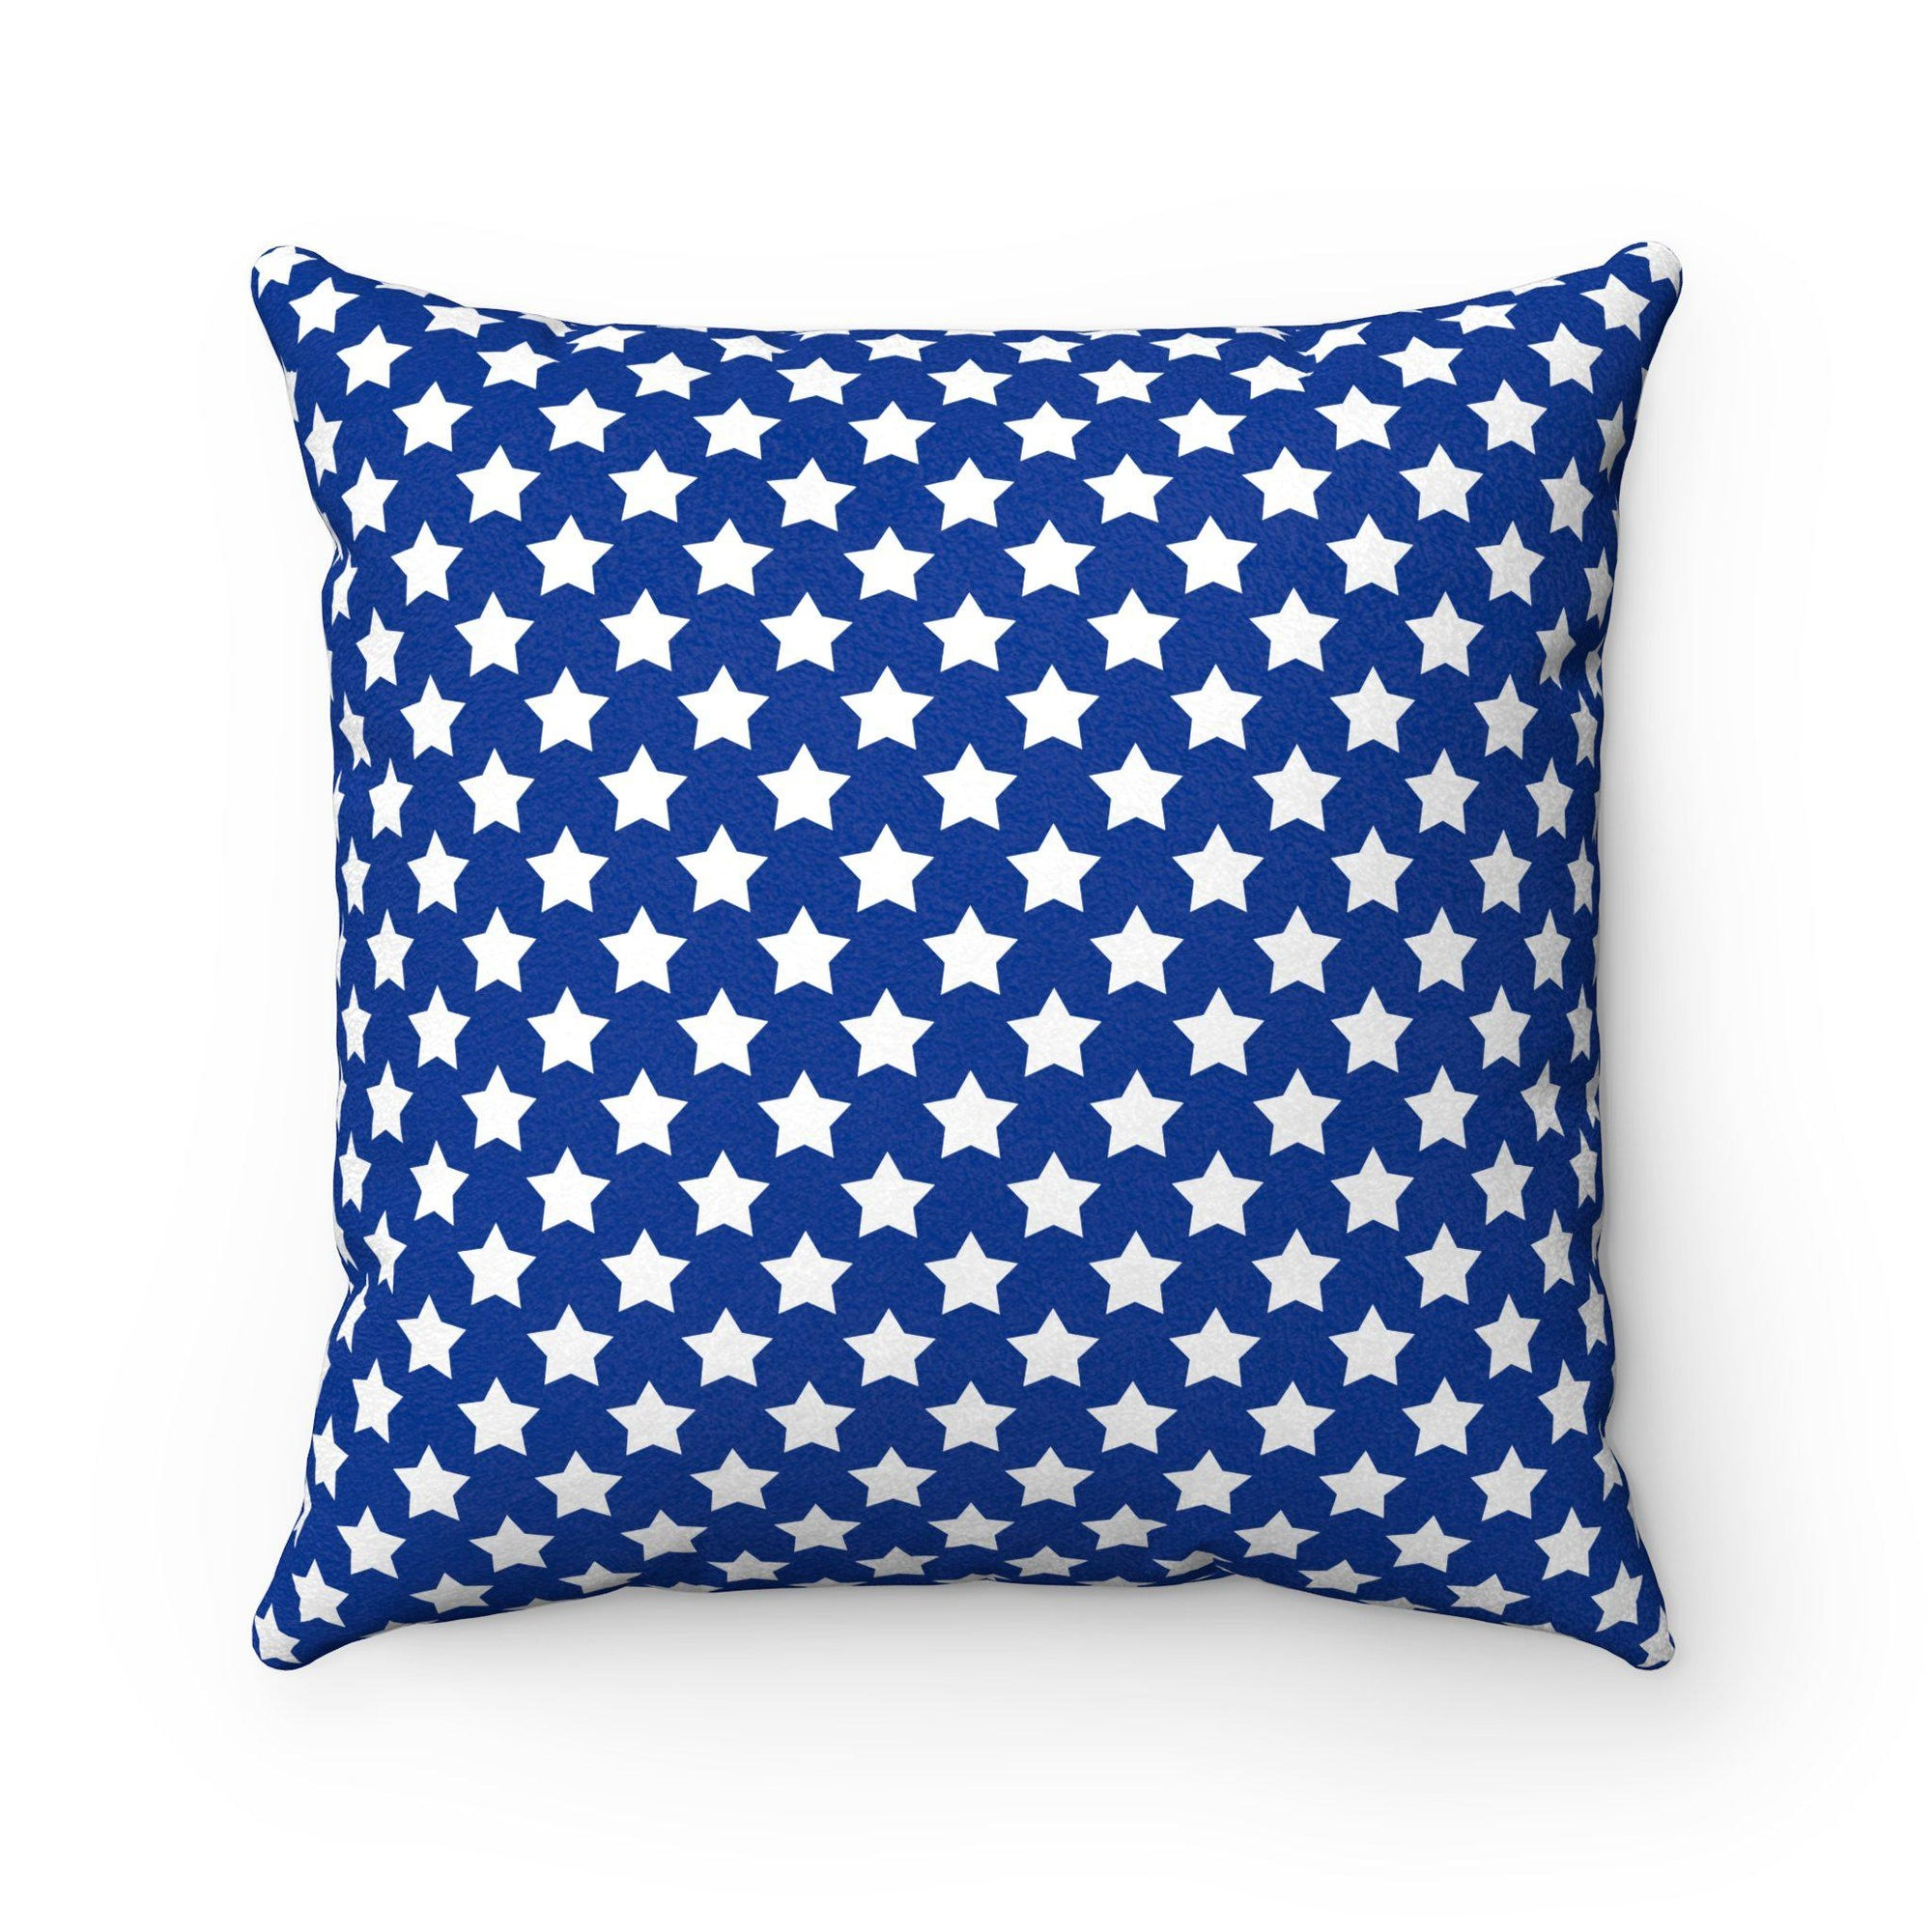 """Stars"" decorative cushion for kids-Home Decor - Decorative Accents - Pillows & Throws - Decorative Pillows-Maison d'Elite-14x14-Blue-Faux suede-Très Elite"